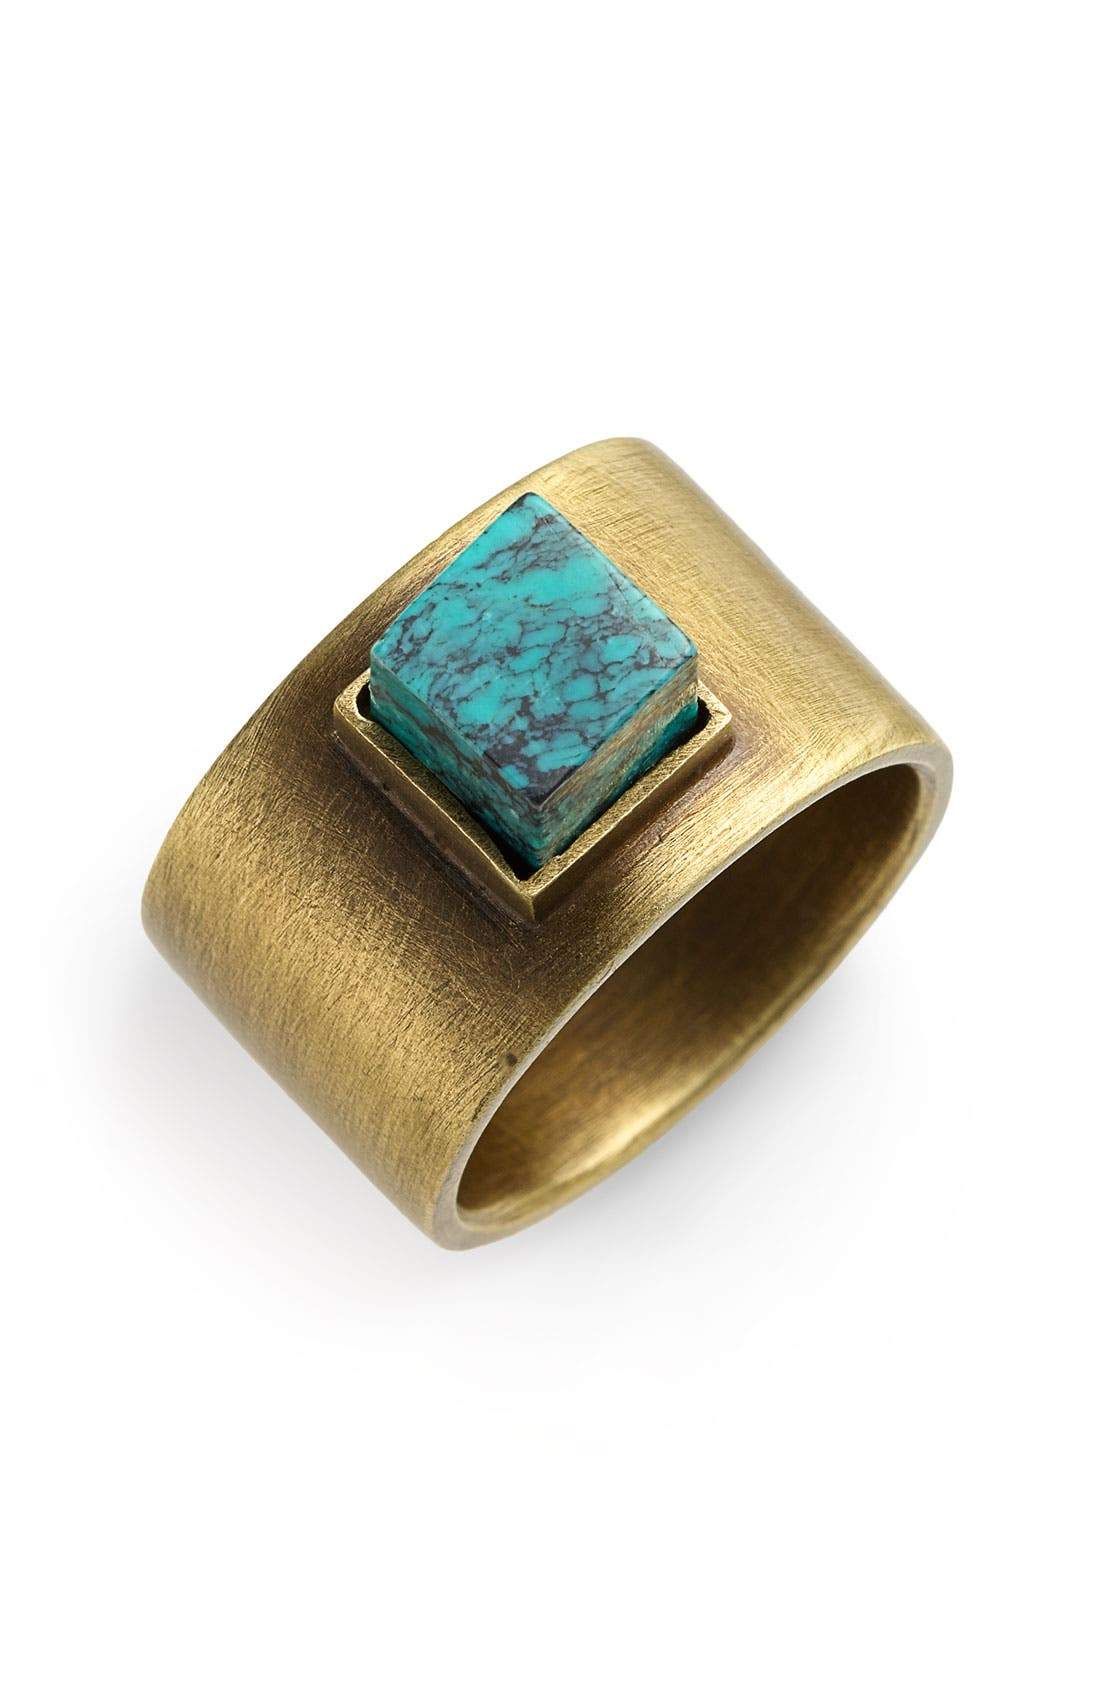 Main Image - Kelly Wearstler Turquoise Stud Ring